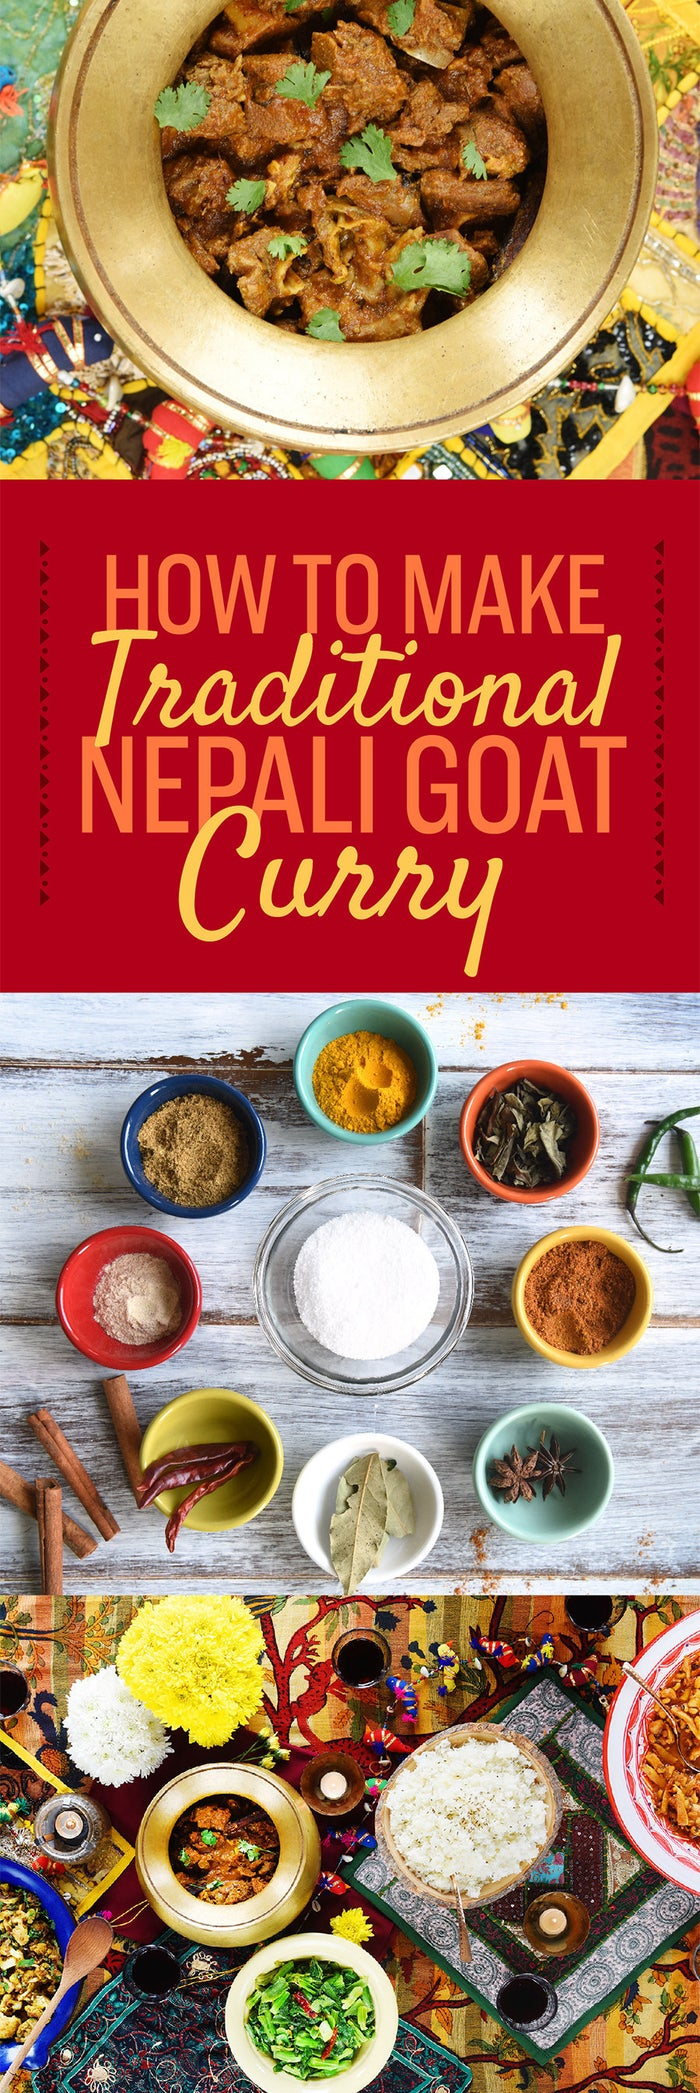 I am obsessed with goat curry. In Nepal, I would wait for my mother to serve it with a heap of rice almost every Saturday. When I would travel, nothing was more important than finding a lunch-stop serving goat curry with all-you-can-eat rice and ghee. During festivals, I would refuse to touch vegetables because, well, who wants to eat vegetables when your father has cooked a whole goat?But when I came to America for college, if I wanted Nepali food I had to cook it myself. In this essay, I chronicled how I learned to make my family's goat curry and the other dishes I grew up eating. The recipe I use to make goat curry is a time-consuming one, but as I learned the hard way, there's no such thing as a delicious easy curry. Below, in step-by-step photographs and a recipe, you'll find out how to make curry like you mean it.